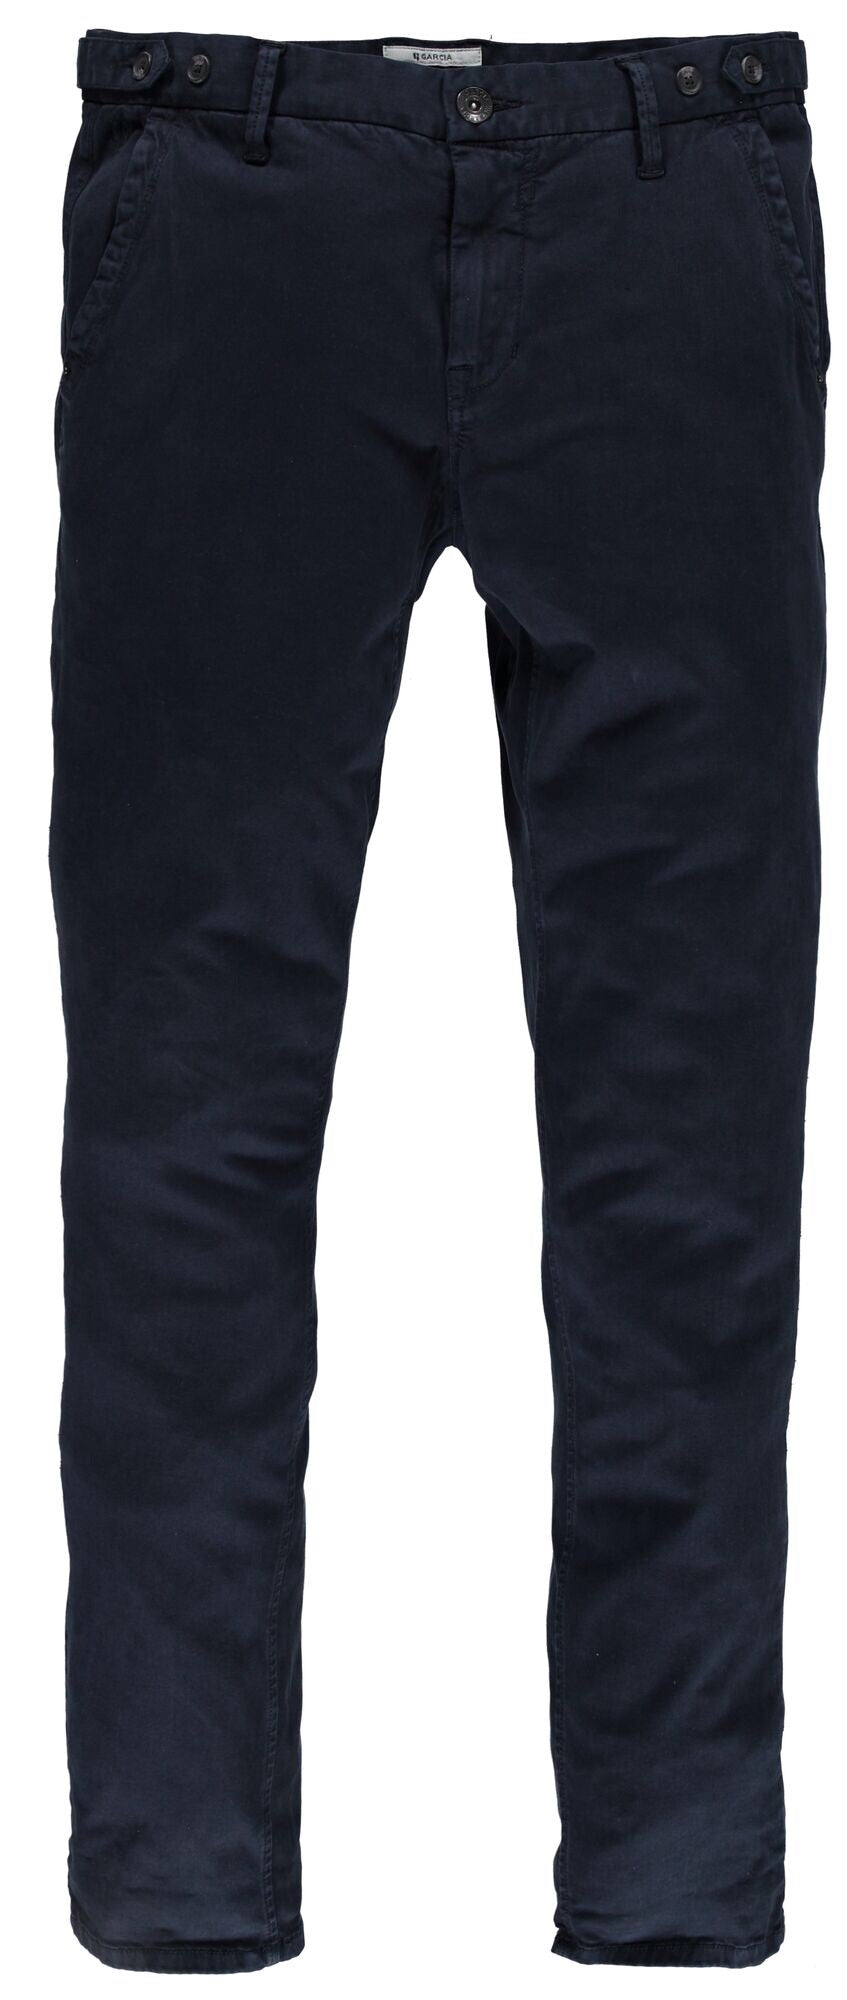 Garcia Men's Dark Moon Chino